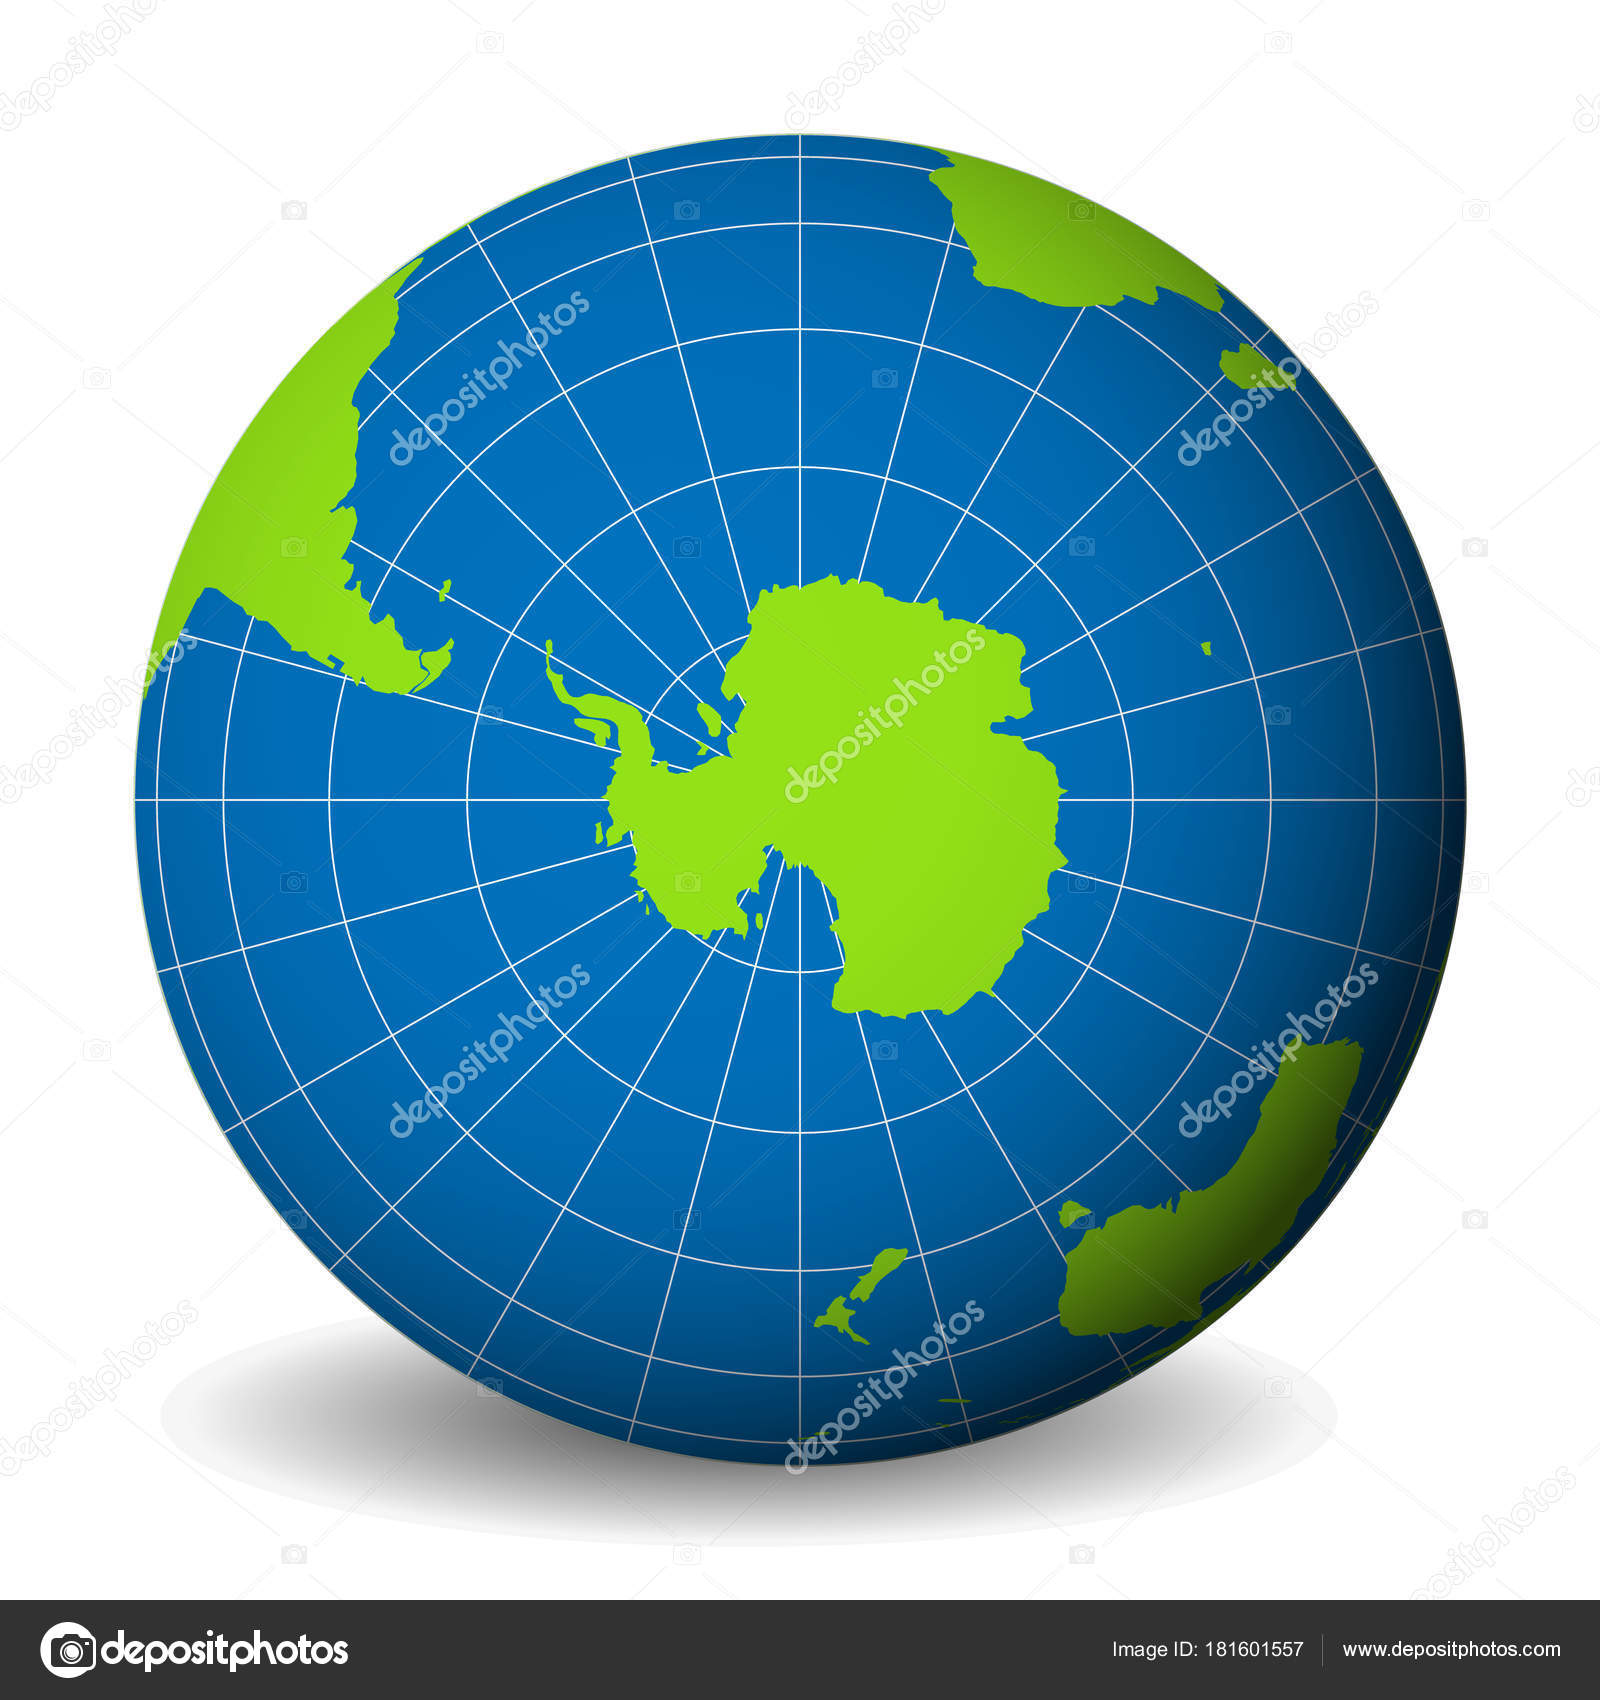 Earth globe with green world map and blue seas and oceans focused on earth globe with green world map and blue seas and oceans focused on antarctica with south pole with thin white meridians and parallels 3d vector gumiabroncs Image collections